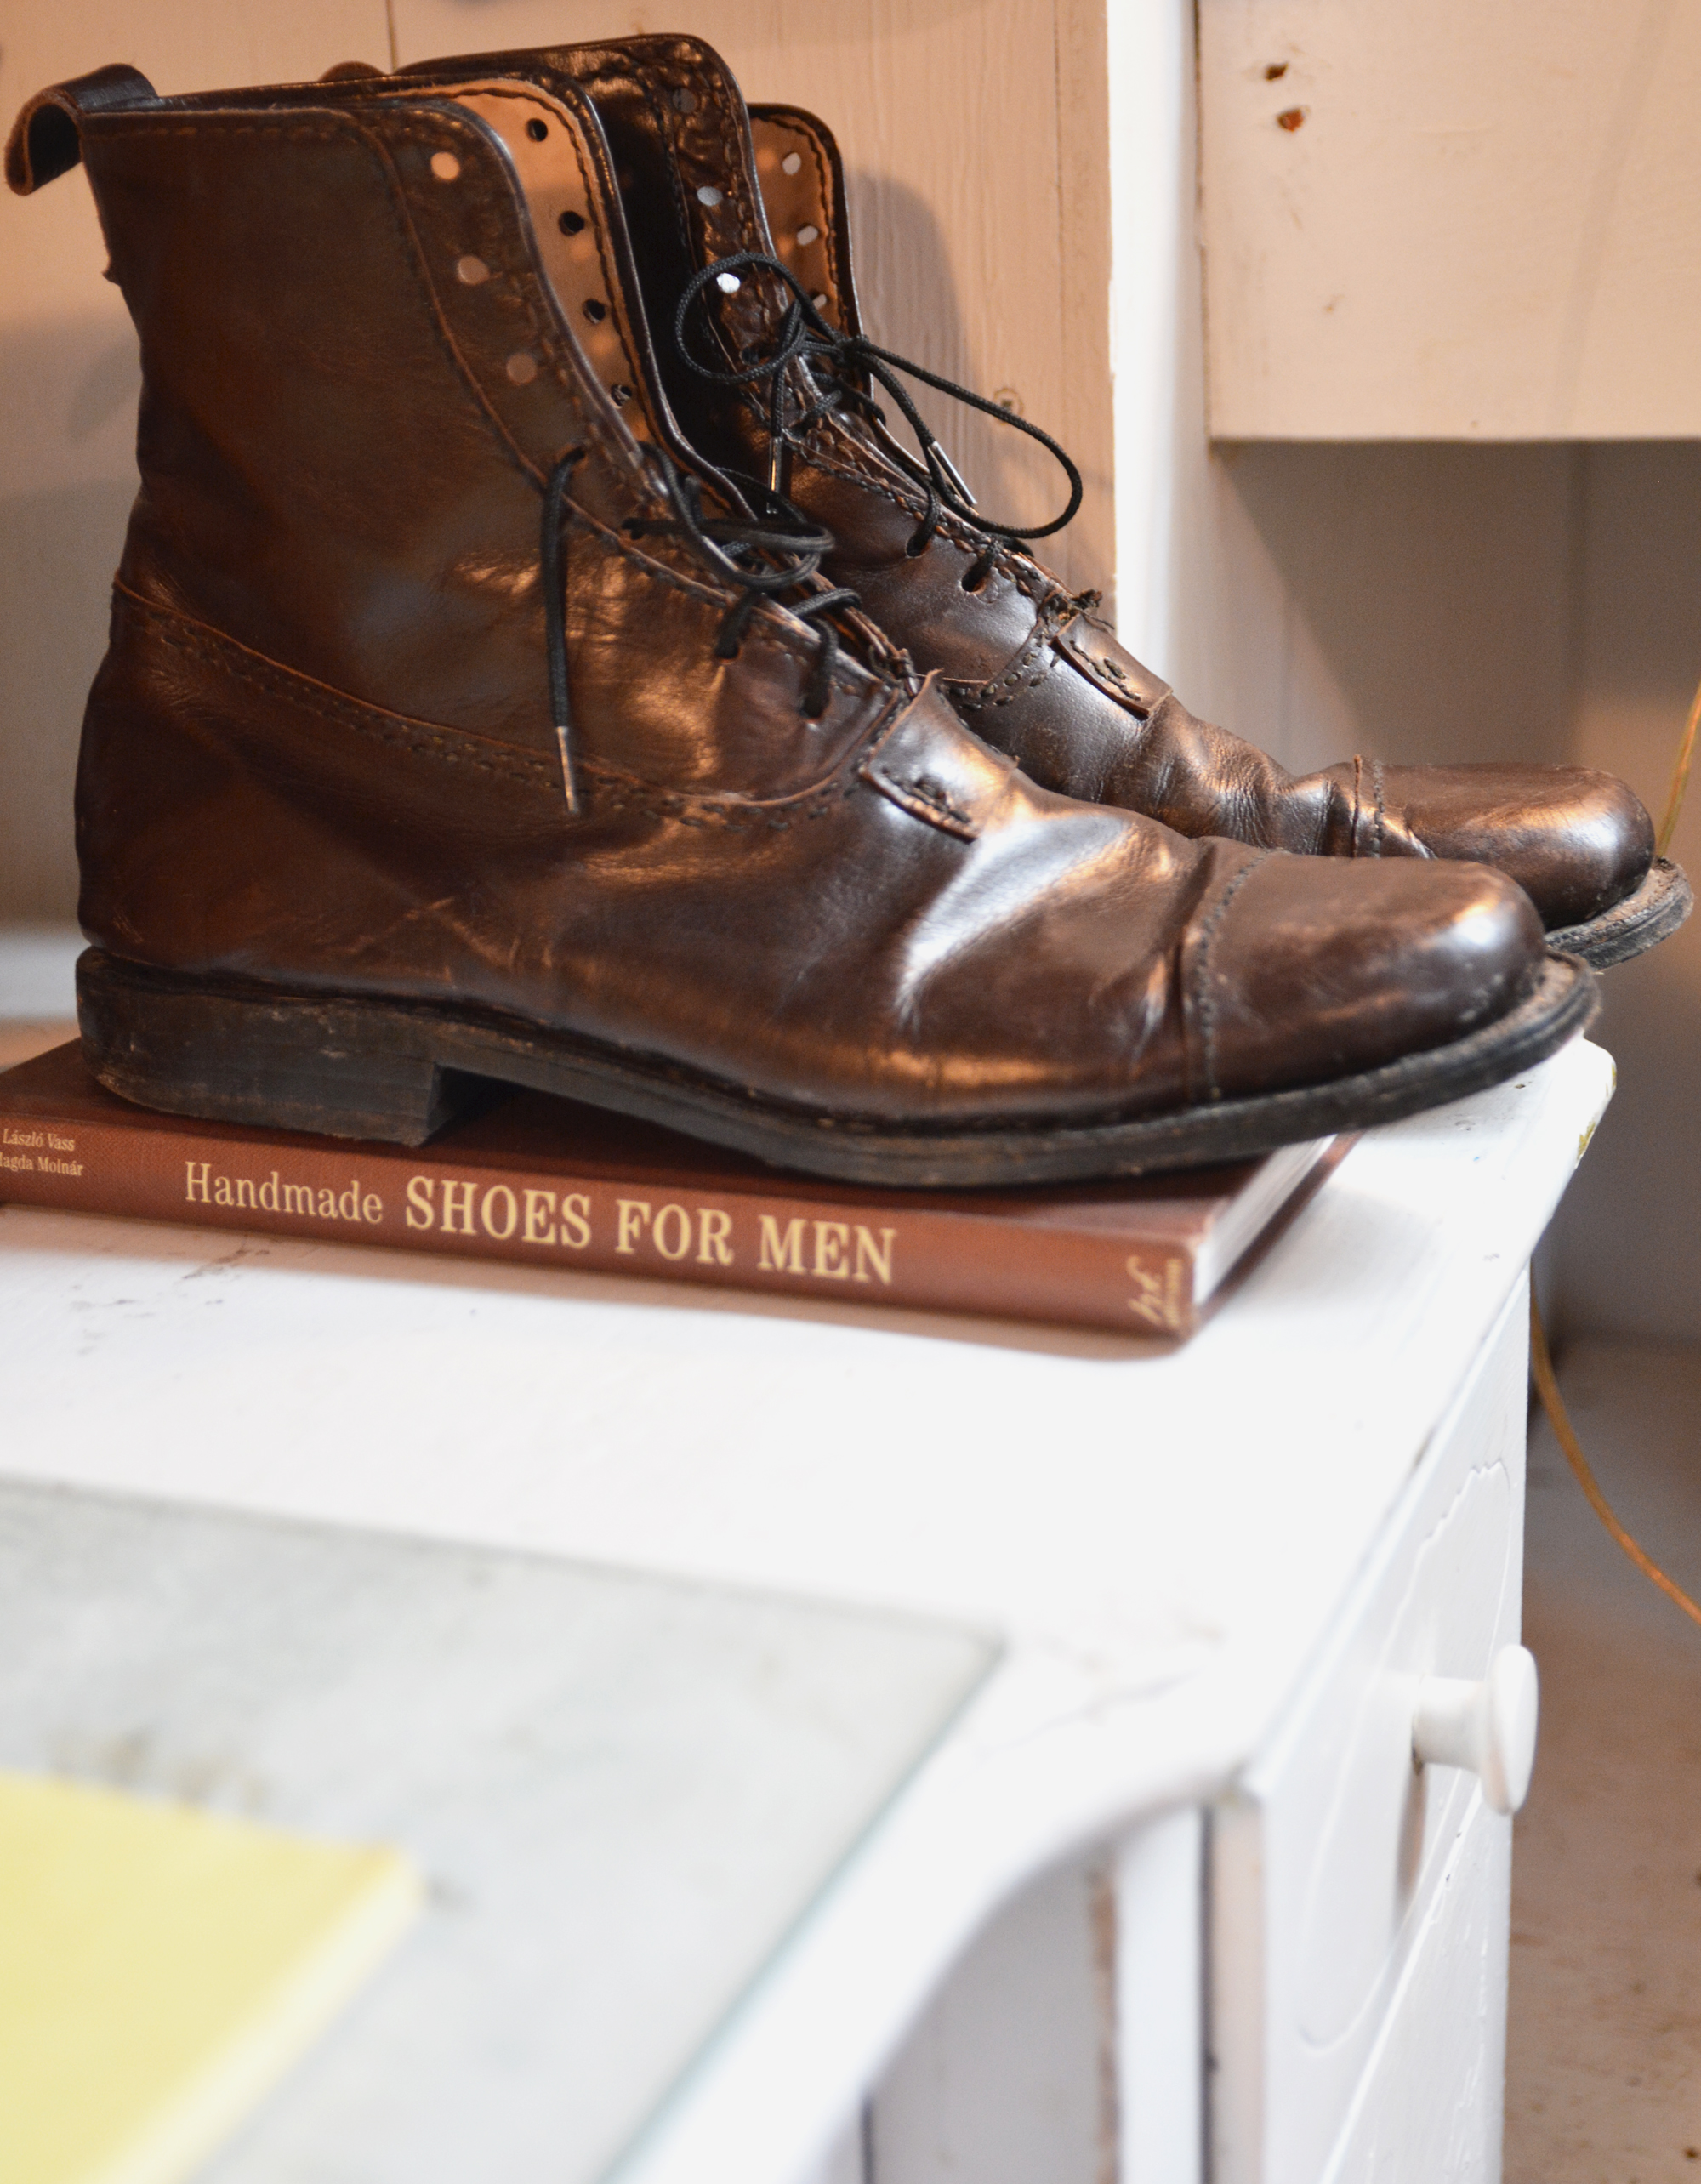 The first leather piece Chris ever made was a pair of boots (pretty ambitious).